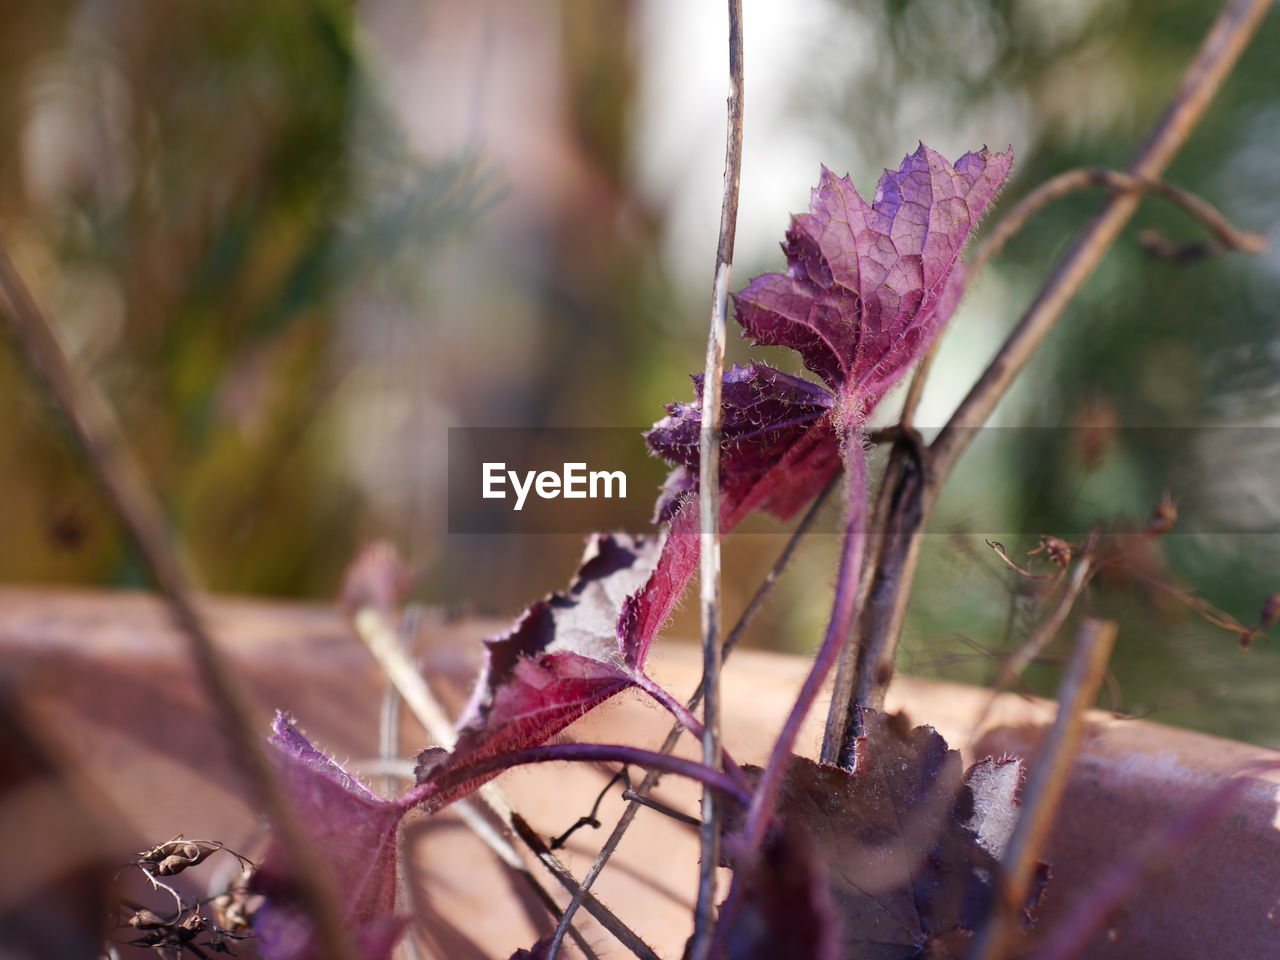 plant, growth, close-up, beauty in nature, nature, flower, flowering plant, fragility, vulnerability, focus on foreground, no people, day, plant part, selective focus, freshness, leaf, outdoors, purple, dry, plant stem